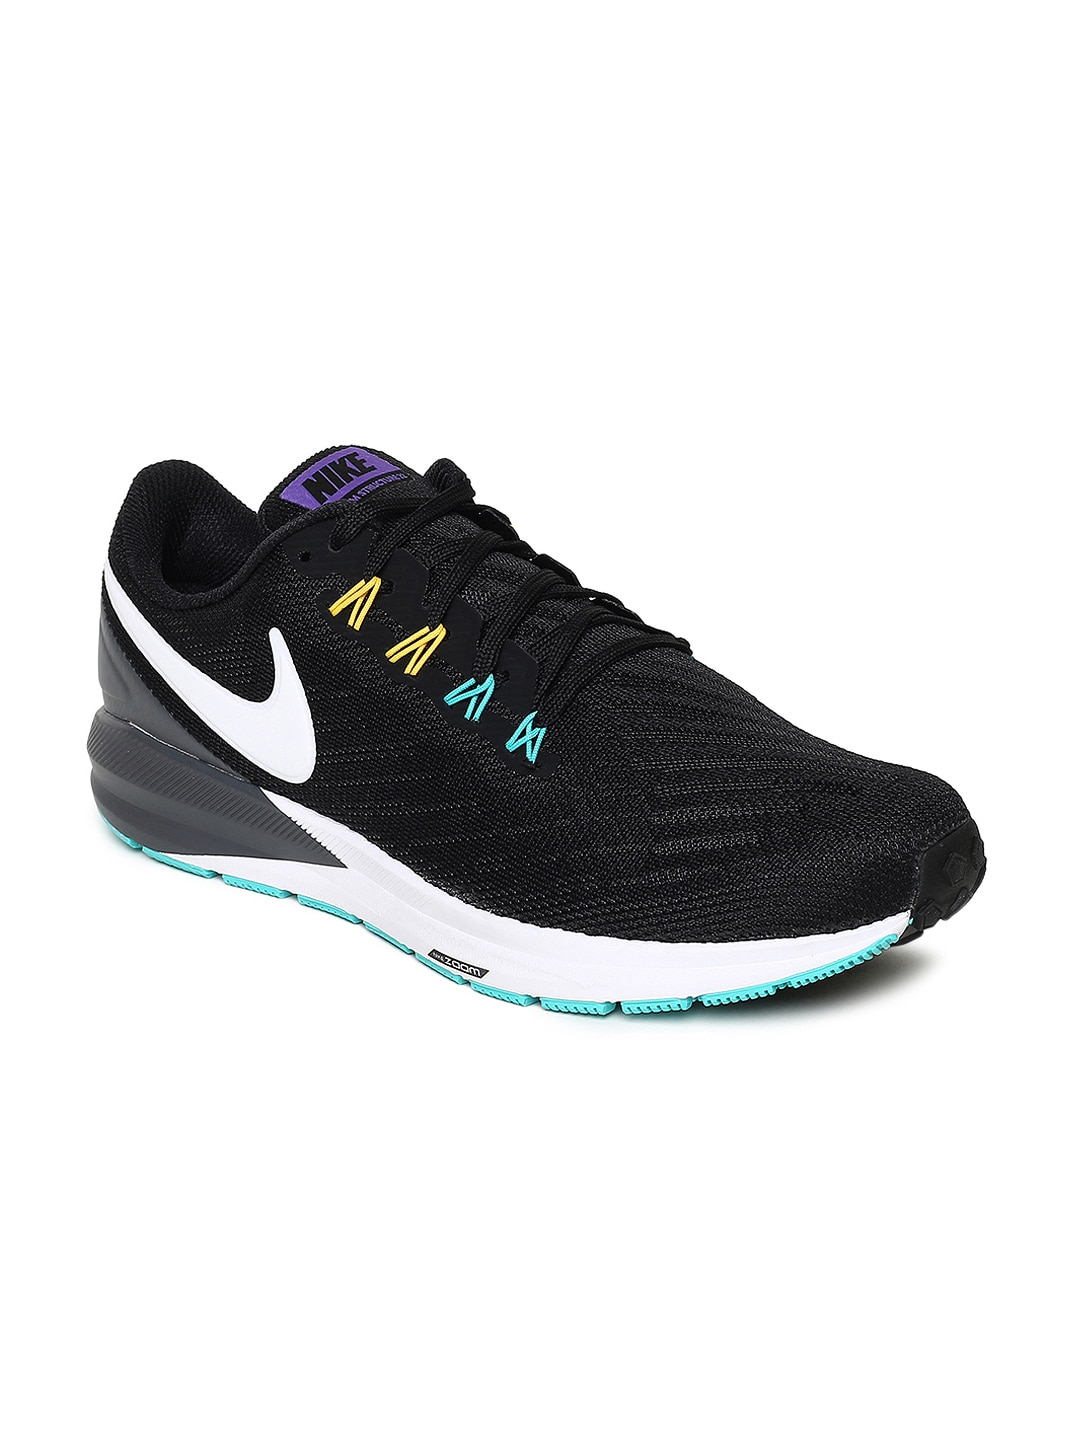 18befe4a306 Nike Shoes for Men - Buy Men s Nike Shoes Online